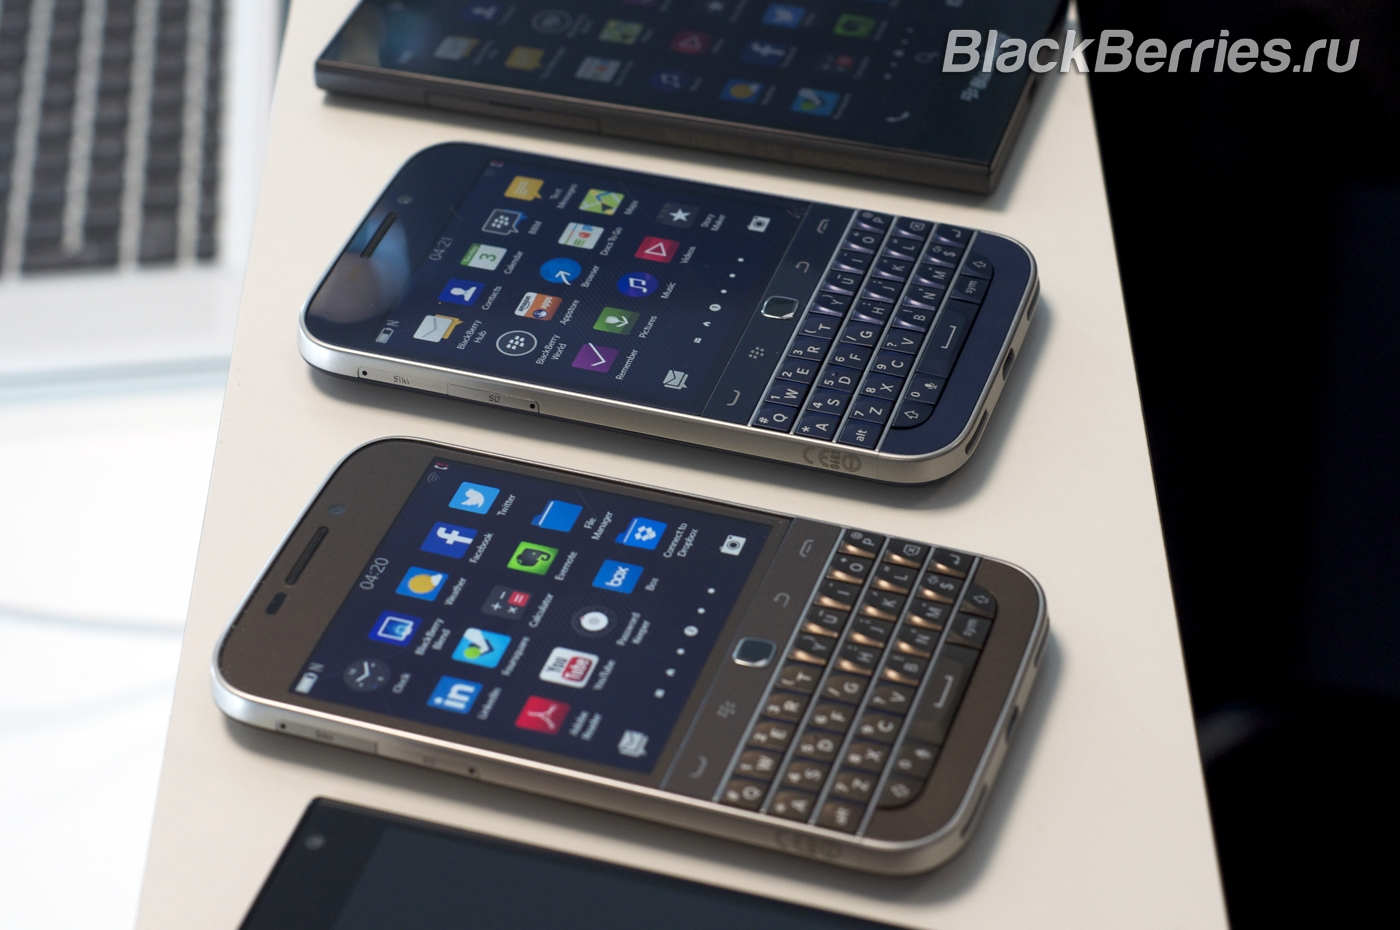 how to delete an app on blackberry classic